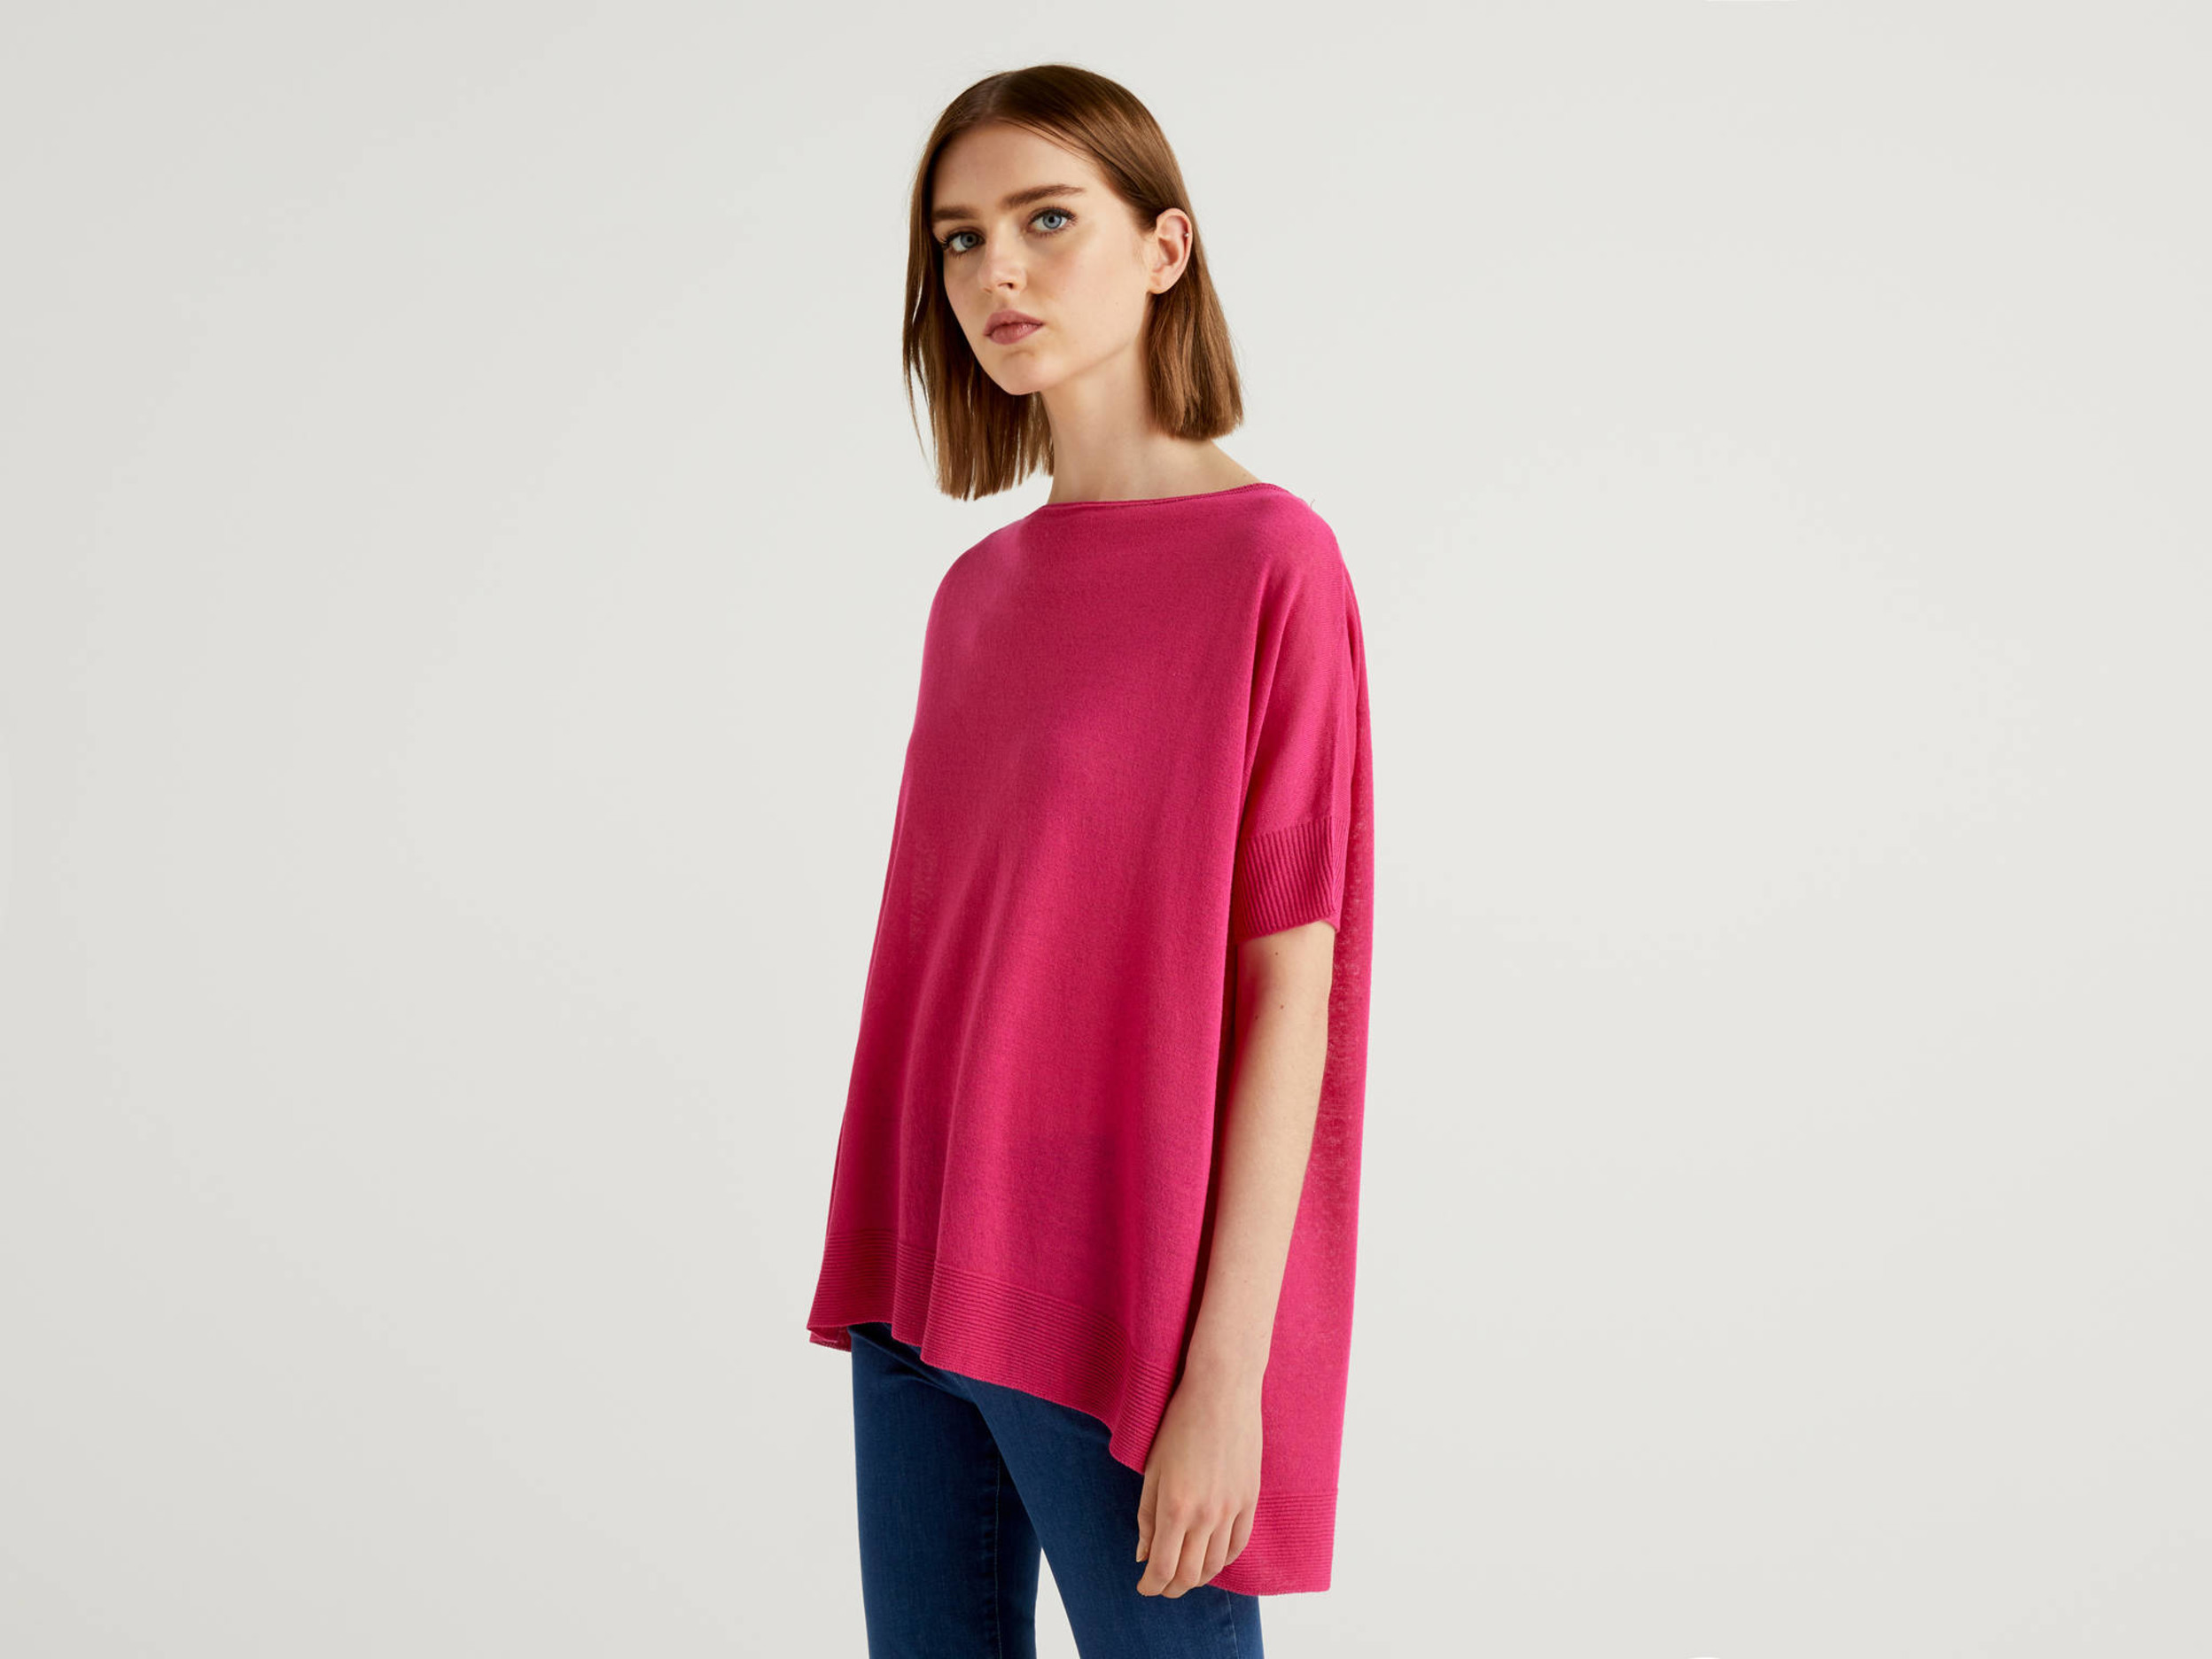 Benetton, Pull Oversize À Manches Courtes, taille L, Fuchsia, Femme